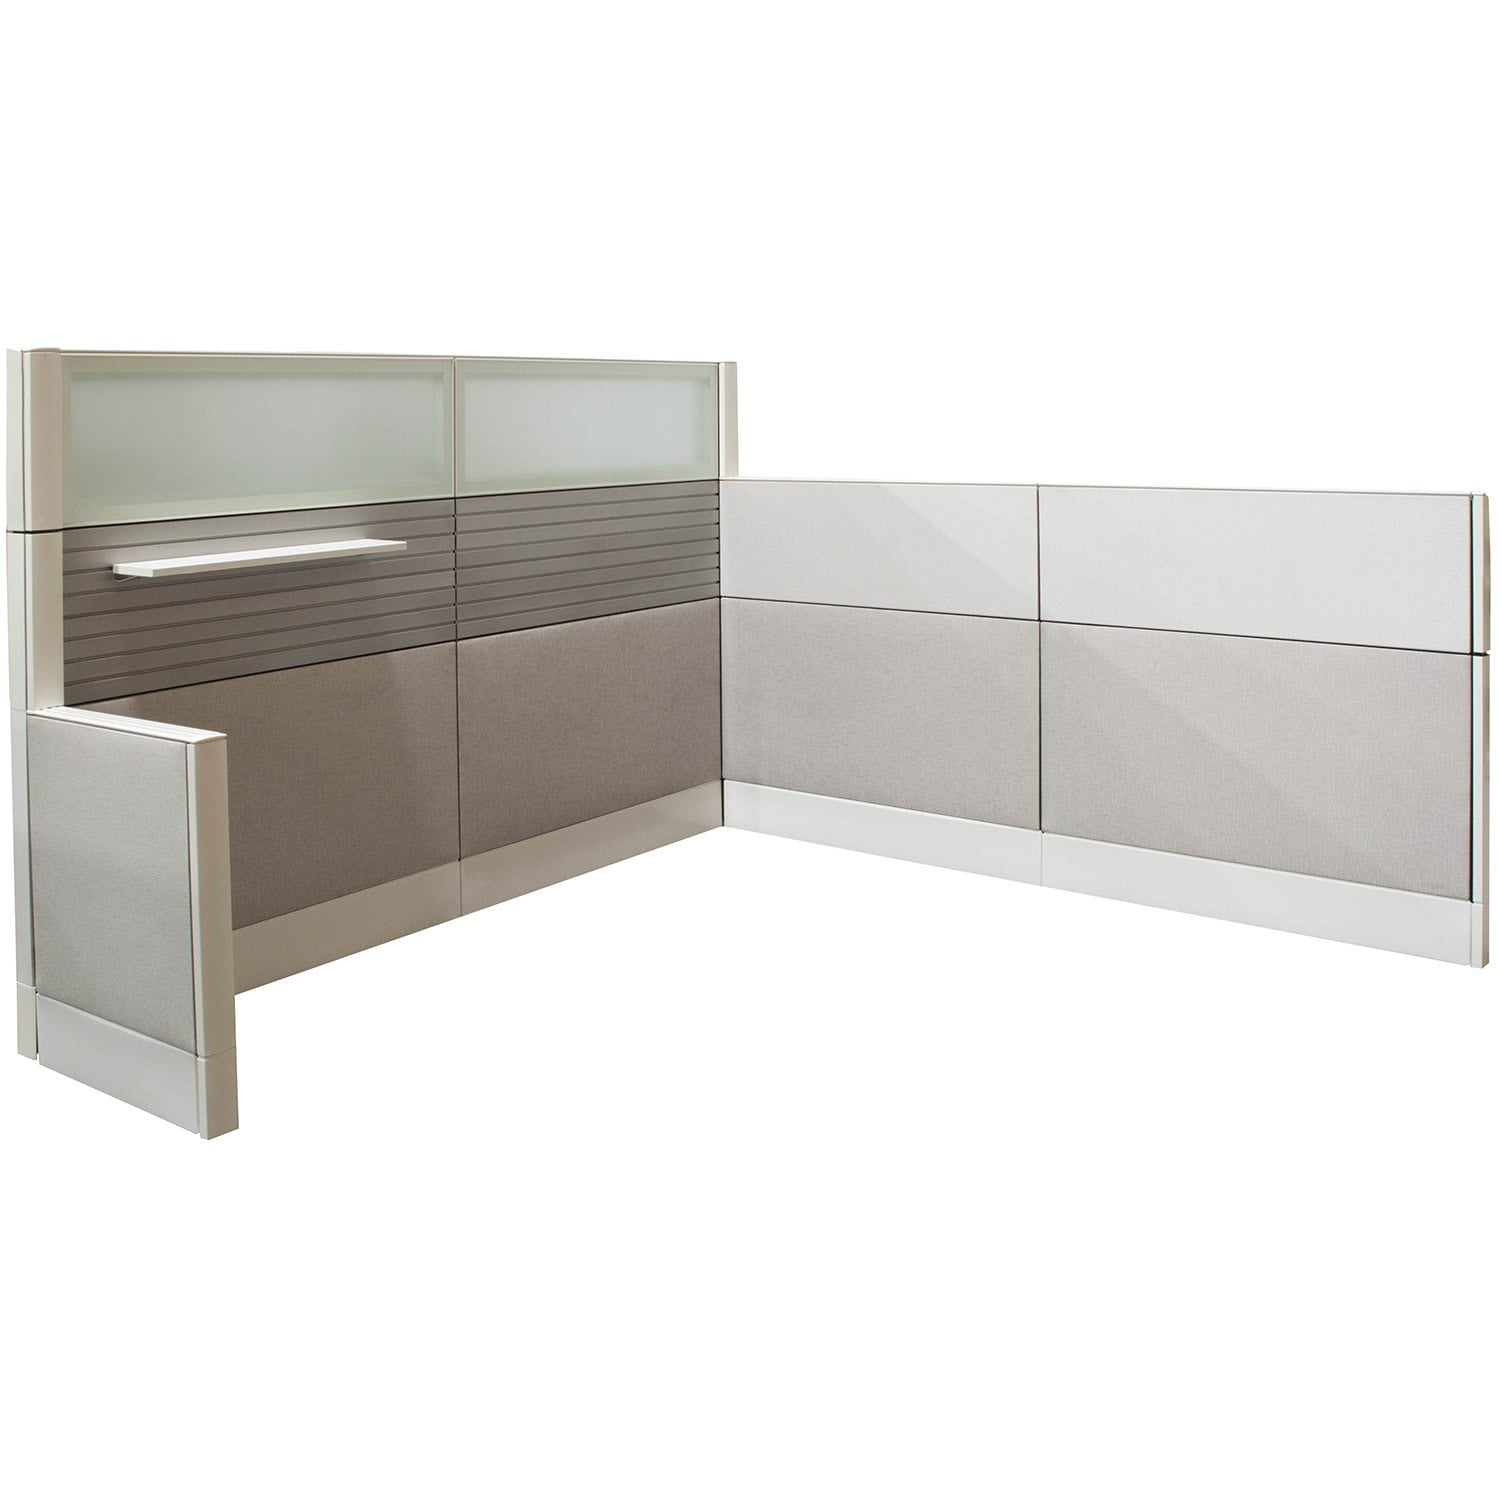 48×49 Inch Premise Used Cubicle Panel By Haworth